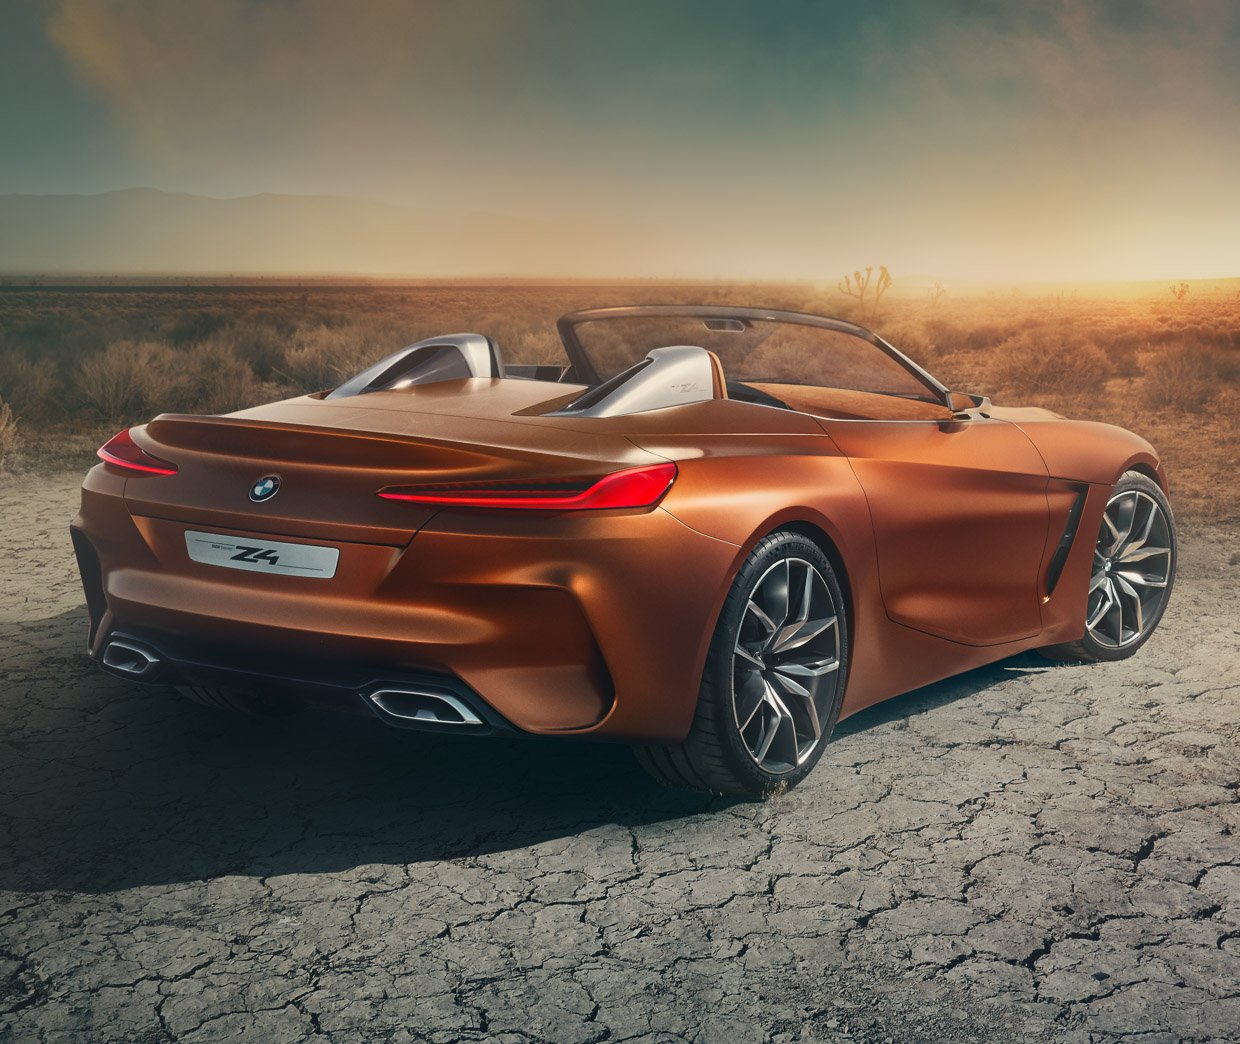 2019 Bmw Z4: BMW Z4 Concept Is Stunningly Gorgeous